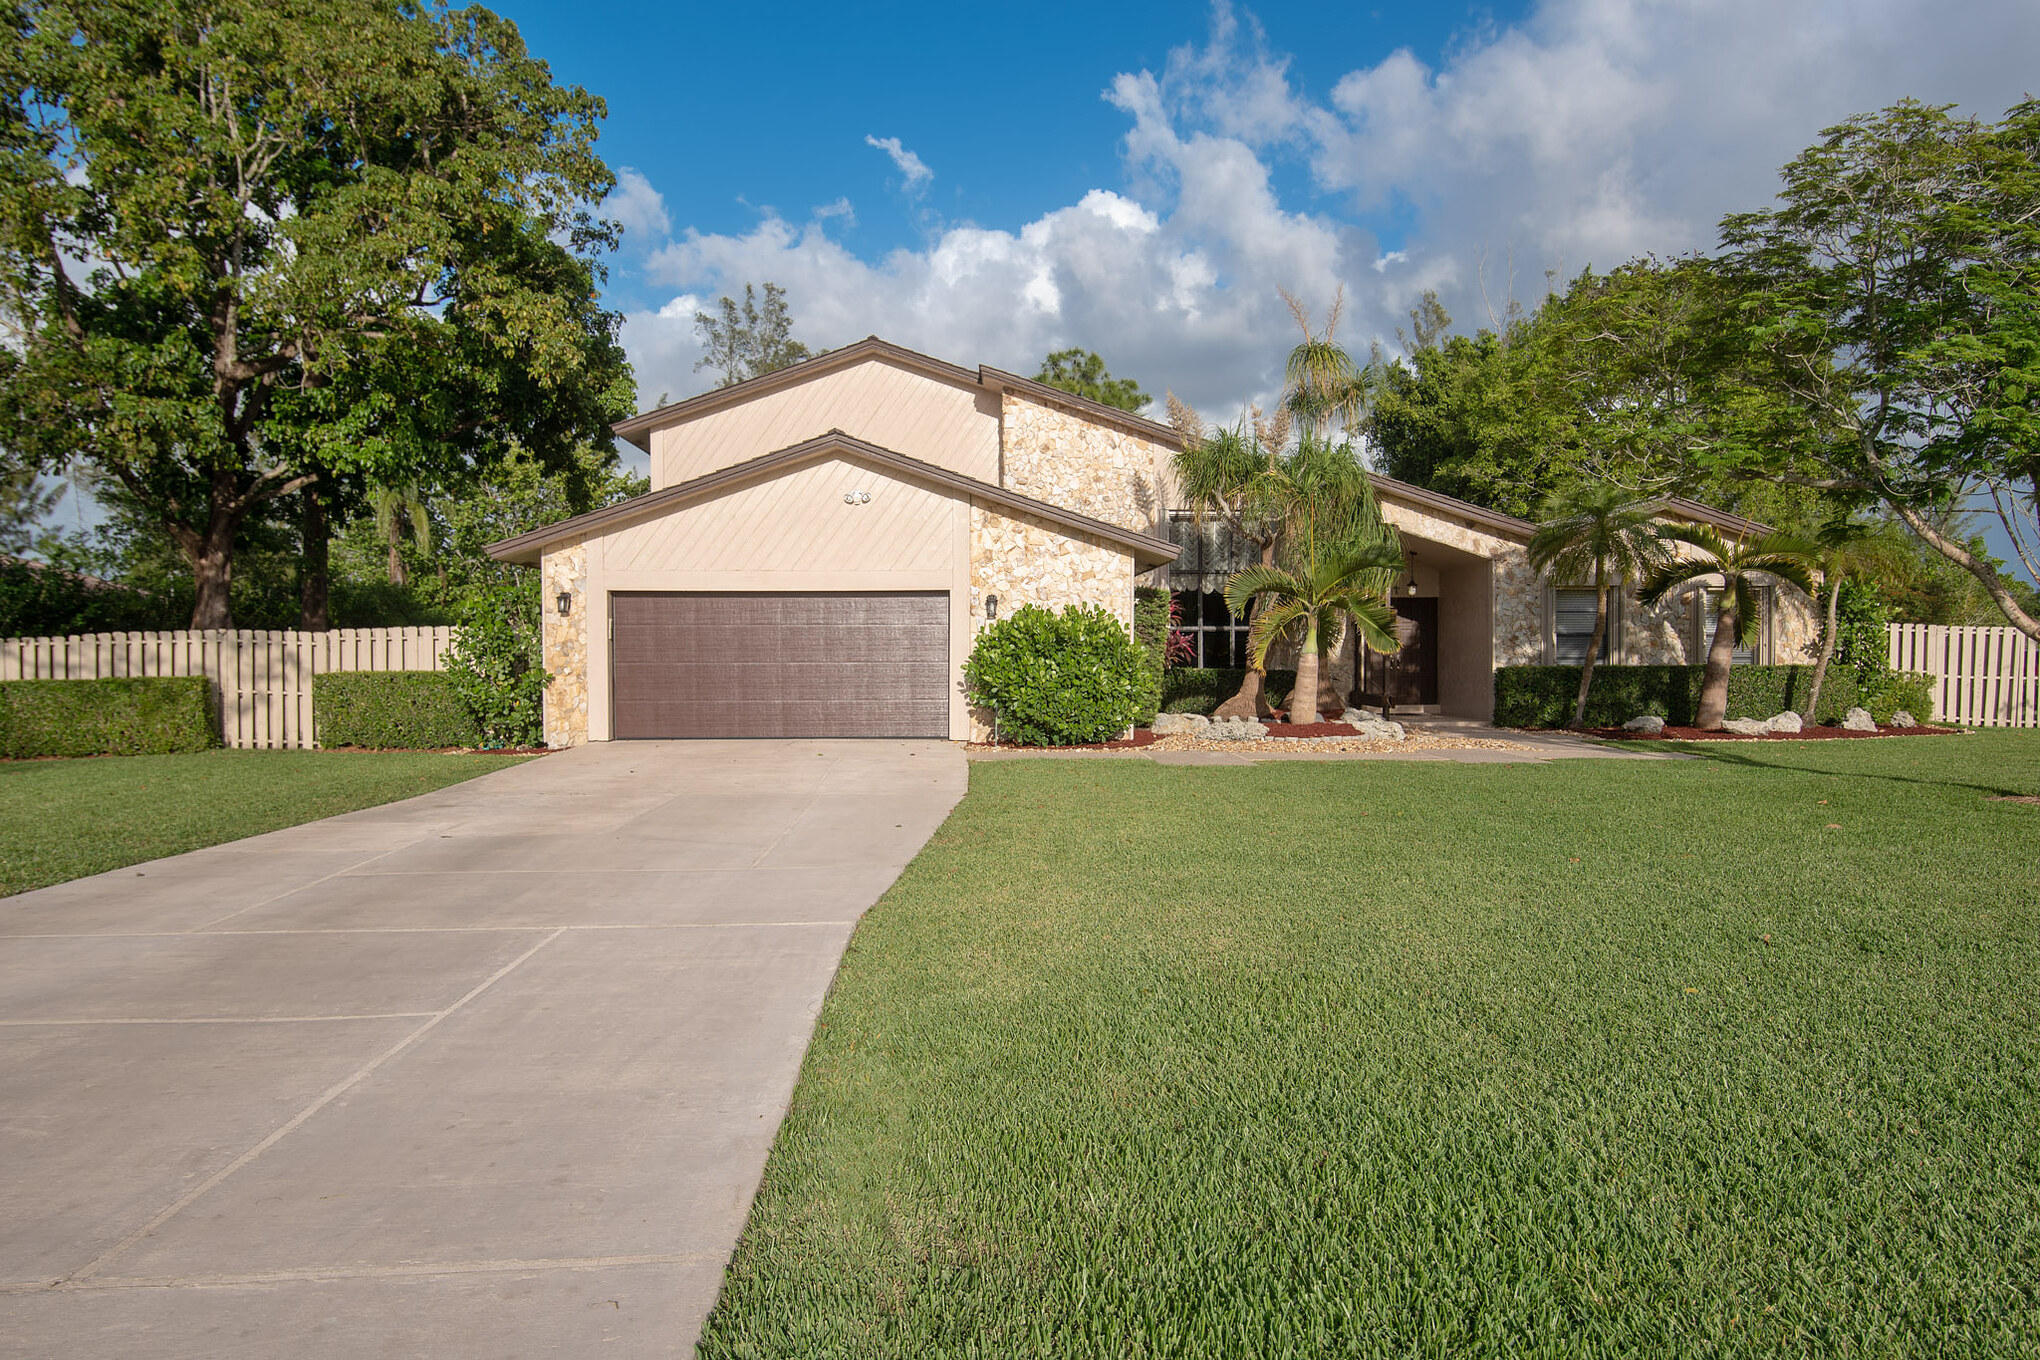 Rare opportunity to live on over 1 acre in the beautiful West Boca neighborhood of Tamarron in Logger's Run. This one of a kind 4 bedroom 2.5 bathroom home has tons of space, lots of light, a huge 2nd story master suite with a spacious master bath and walk-in closet, fireplace, hurricane shutters and a bonus/sun room leading out to a private pool and giant backyard and patio for entertaining. Close to parks, shopping, and top rated schools including Water's Edge Elementary.